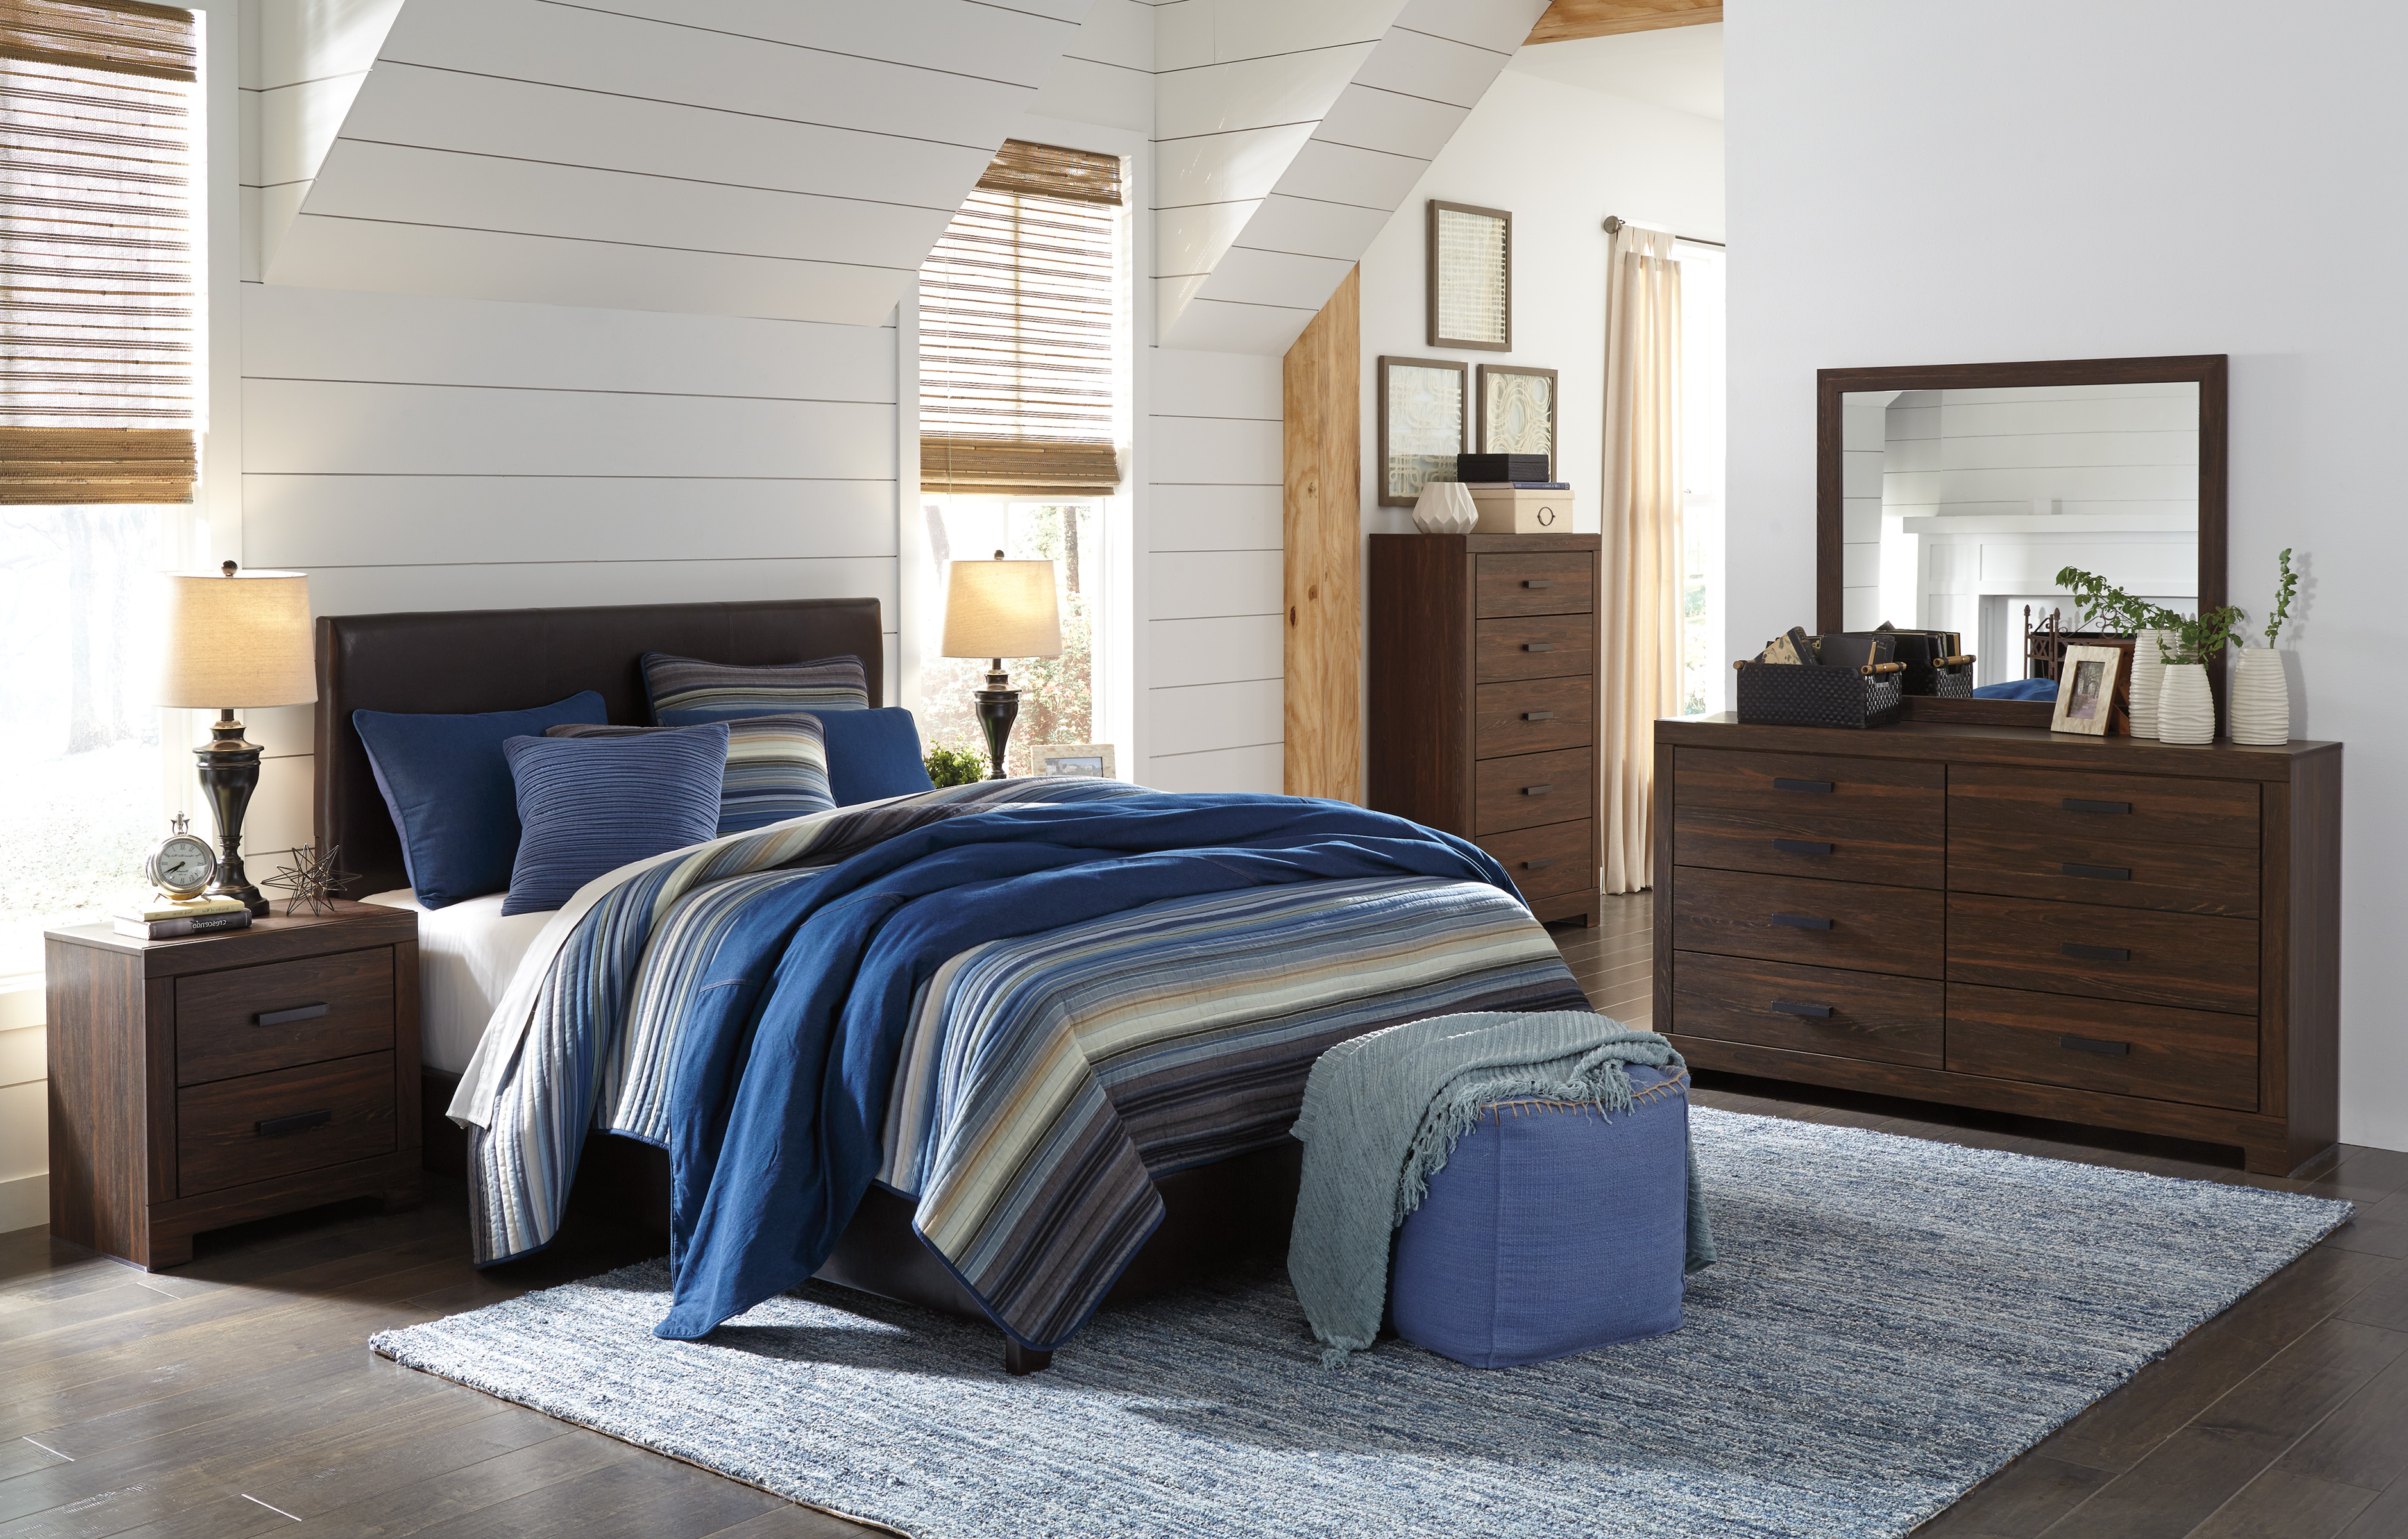 Arkaline Full/Queen Headboard, Dresser, Mirror & Nightstand  / $21.99 A Week